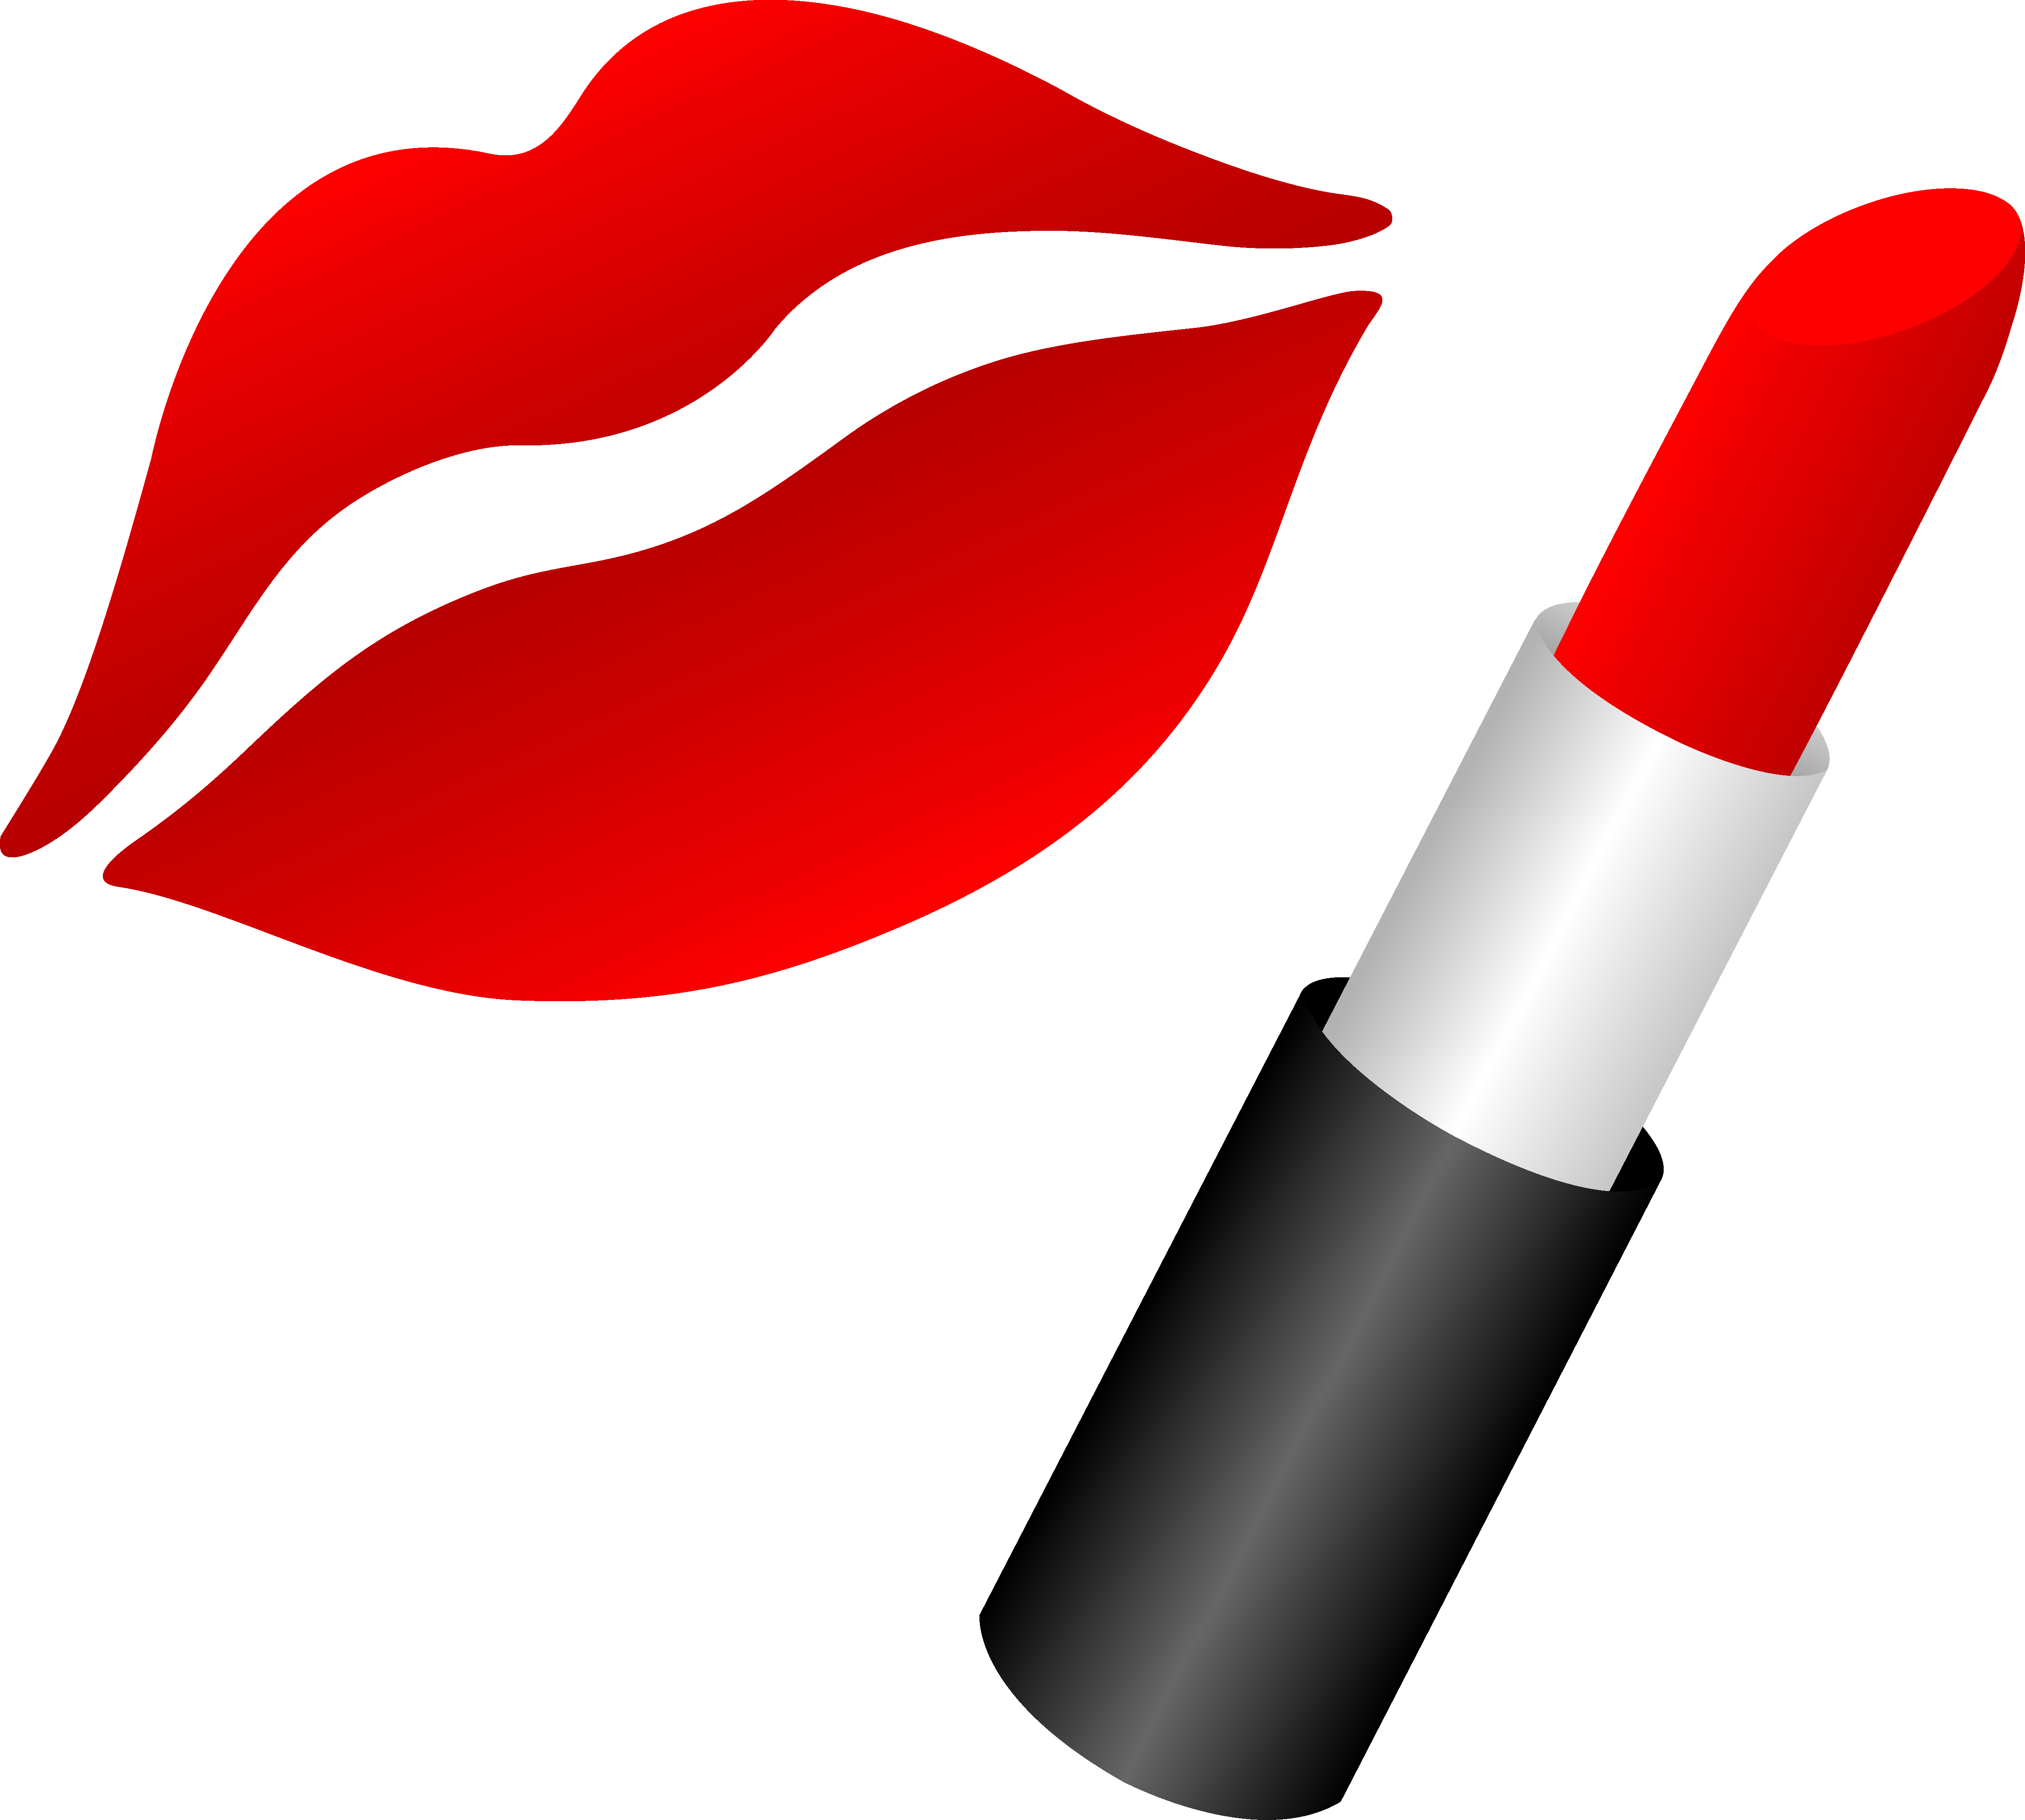 banner library Lips with red free. Mustache clipart lipstick.